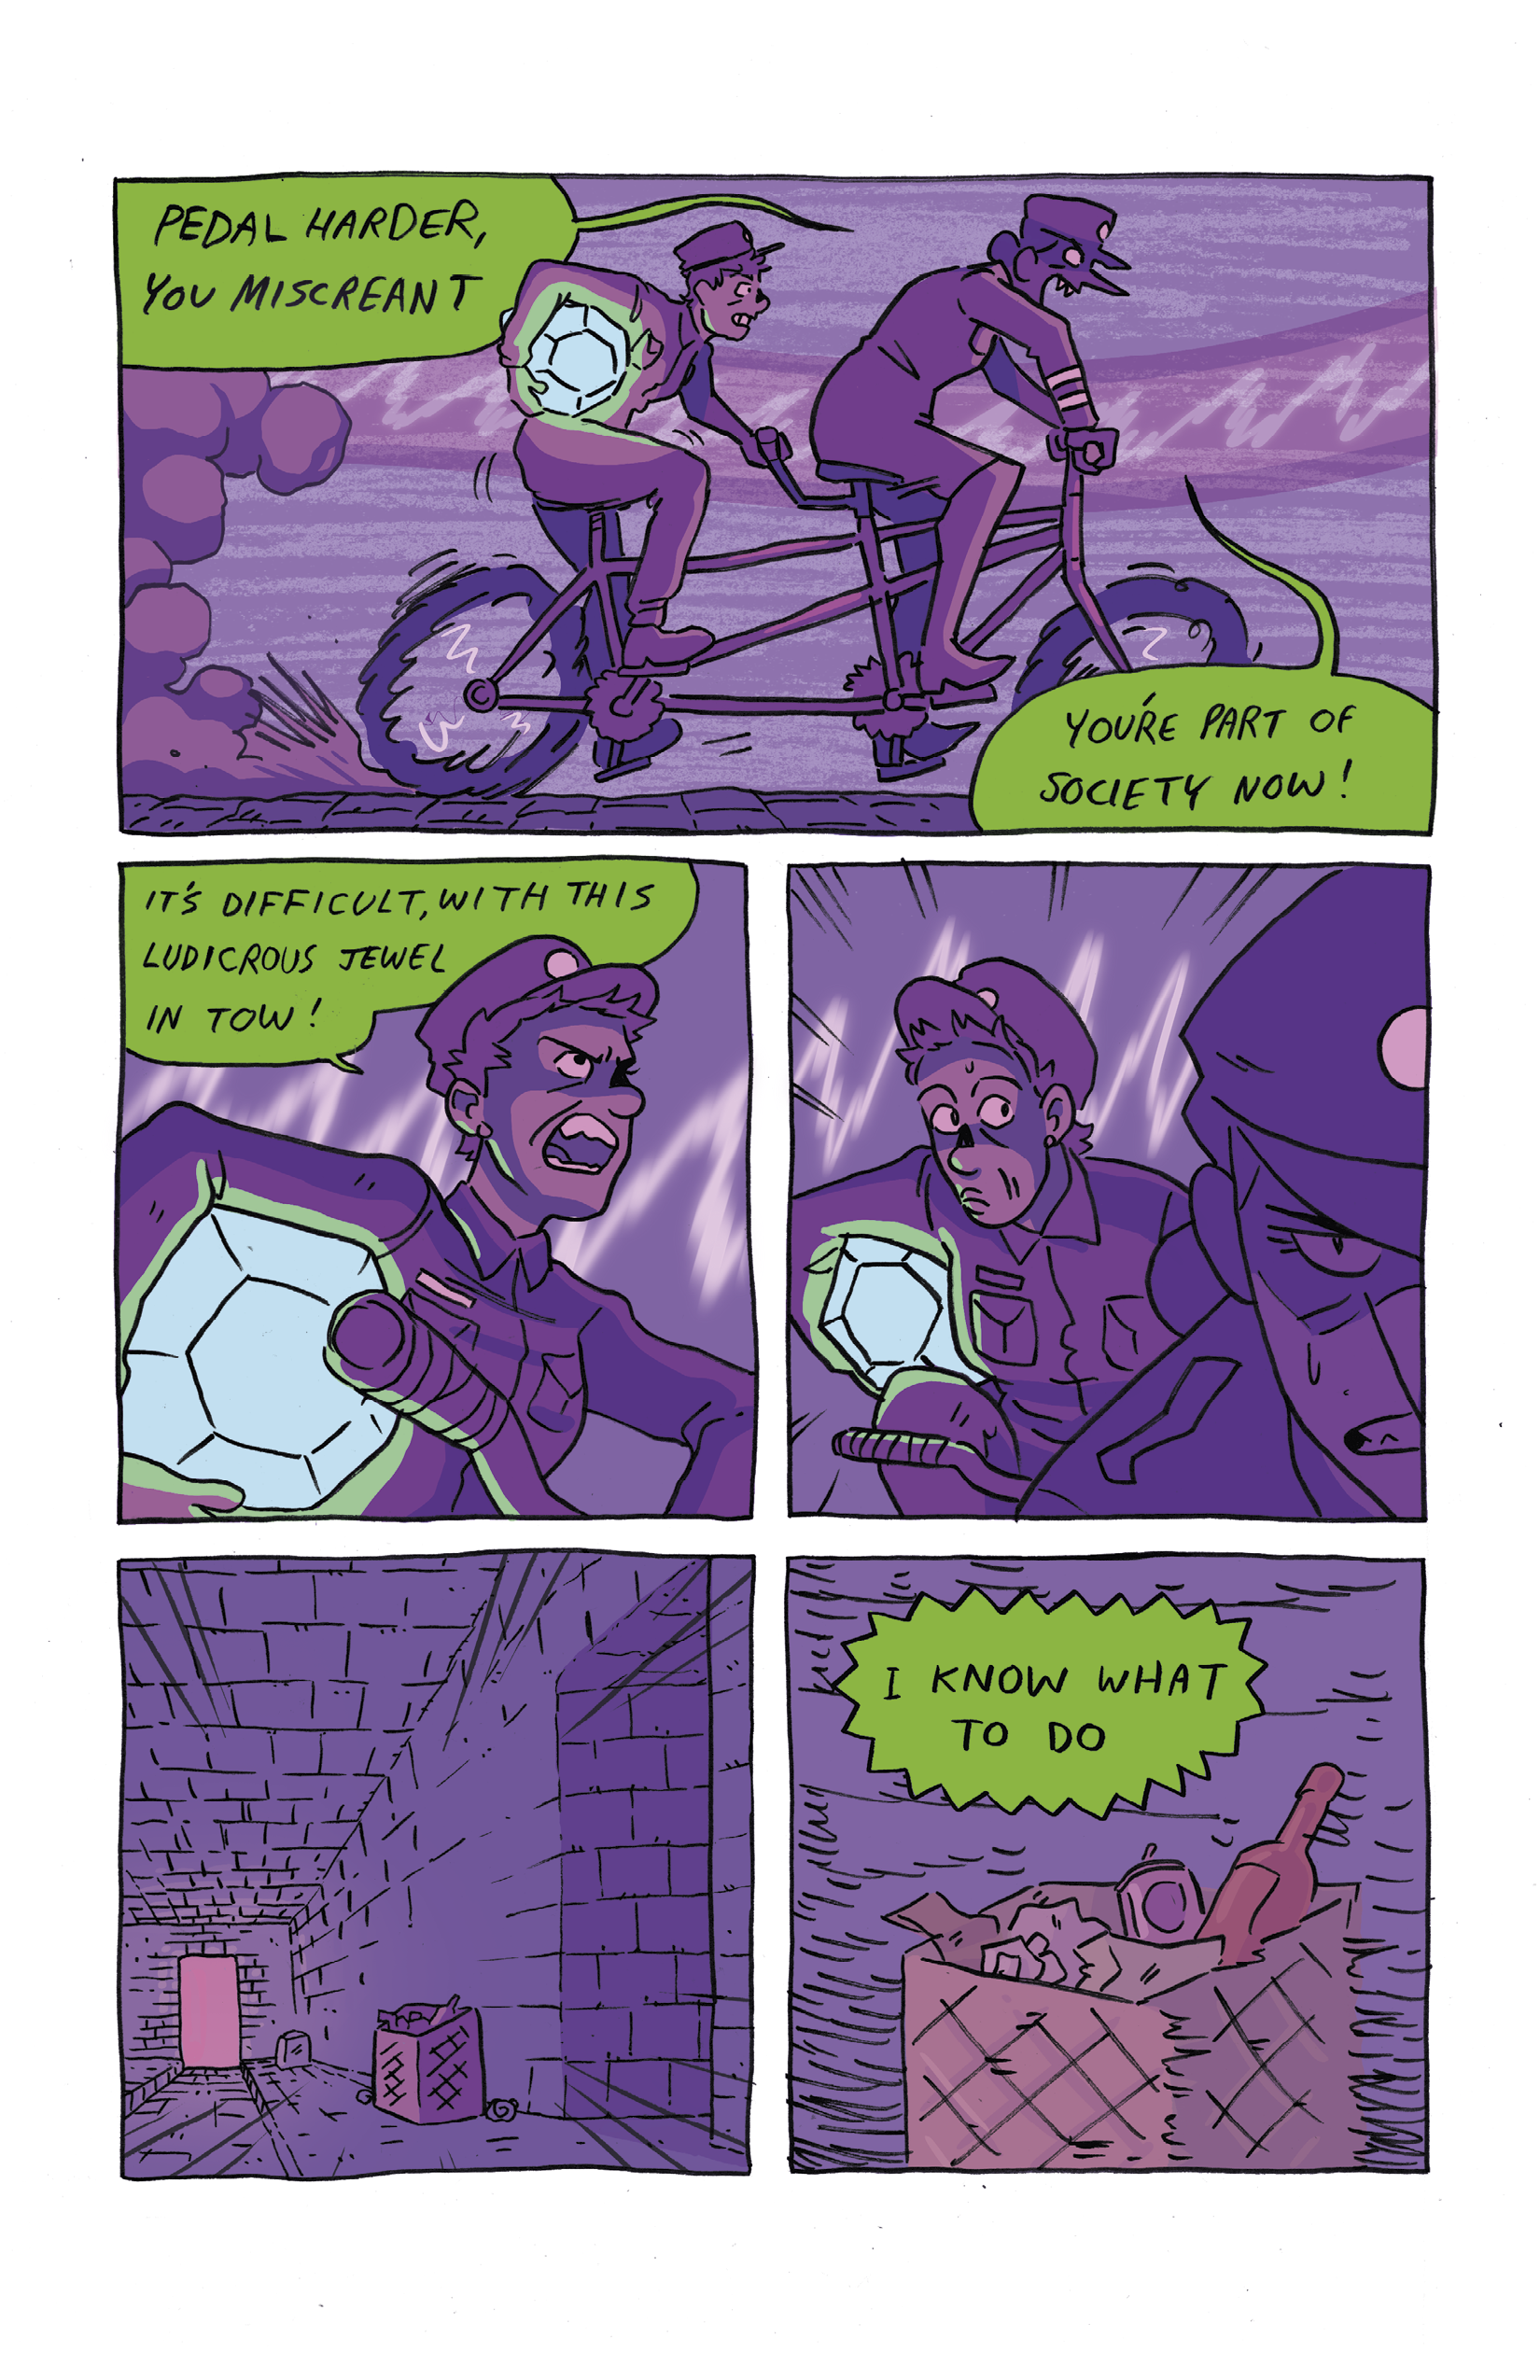 METANOIA_final_001_single_pages17.png